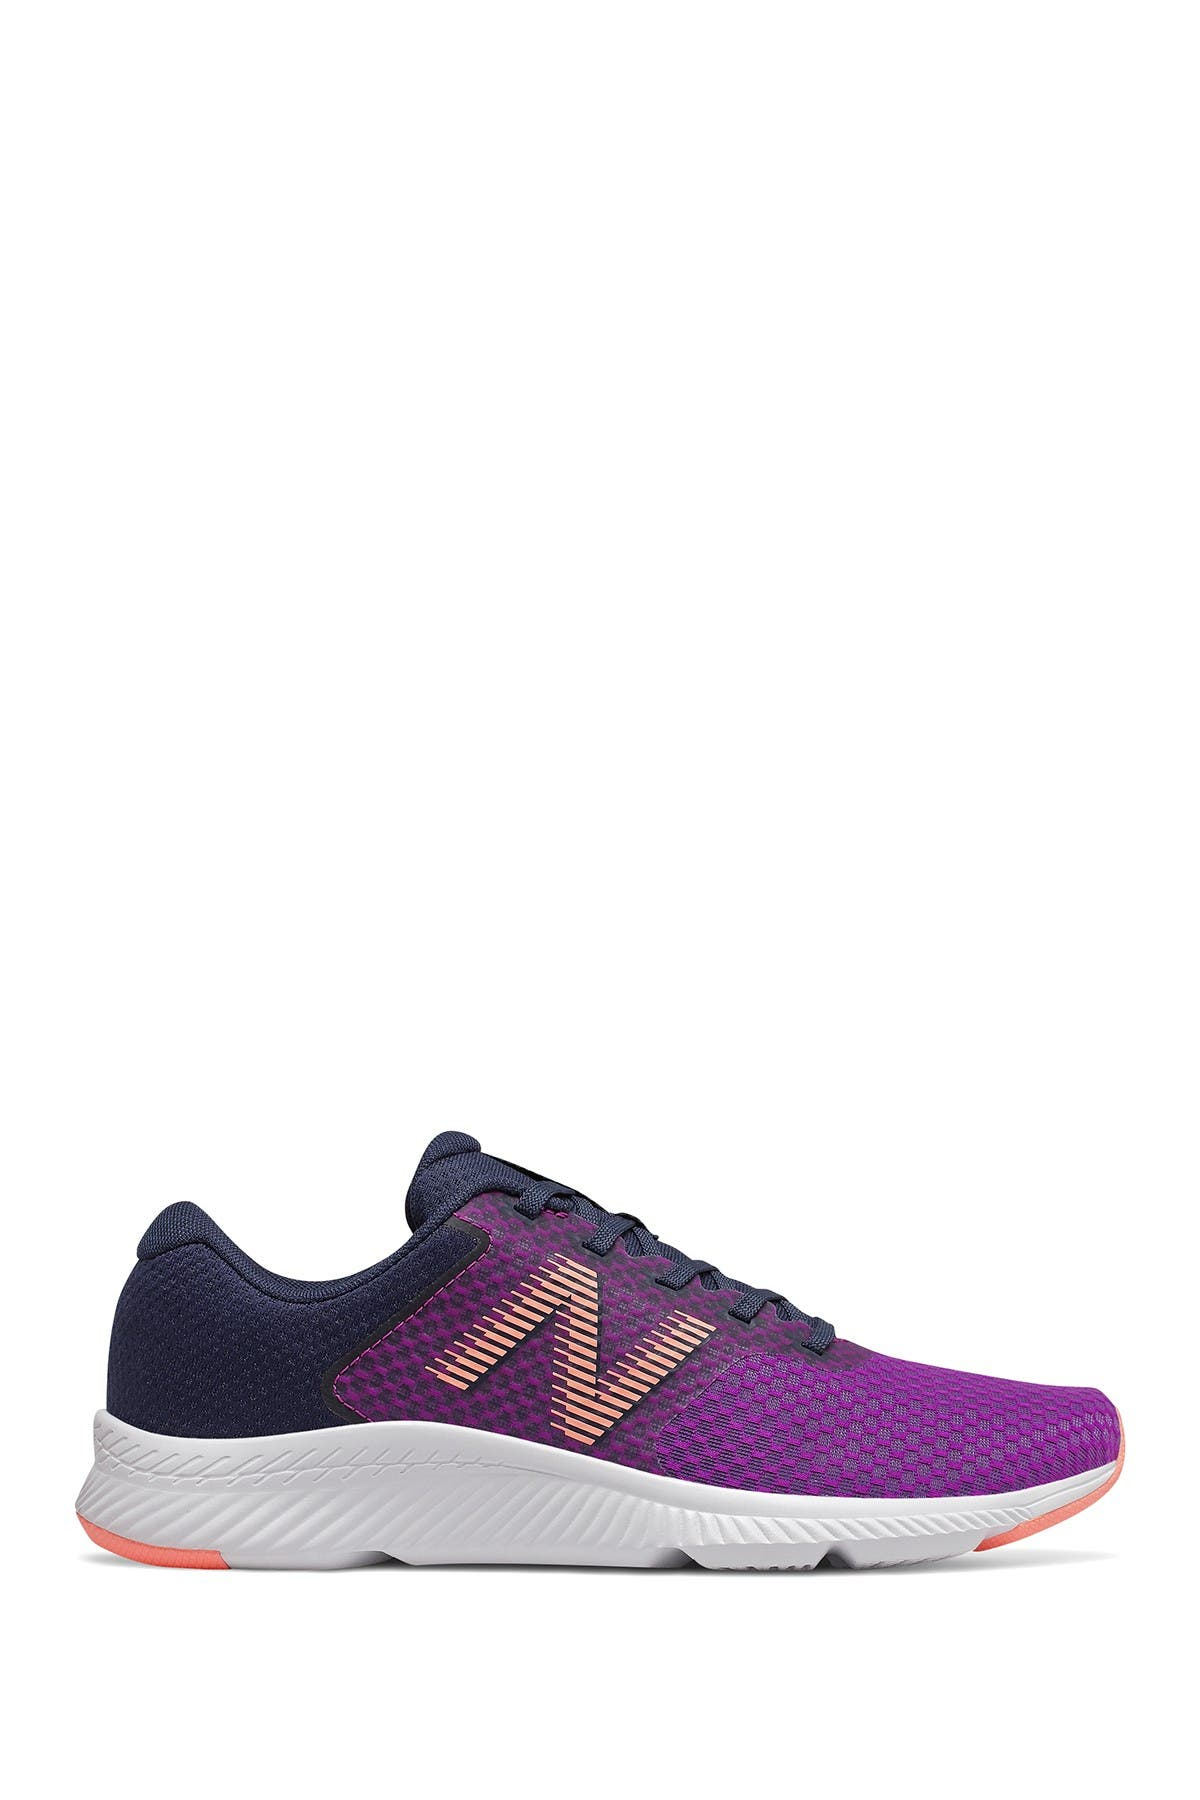 Image of New Balance 413 Running Shoe